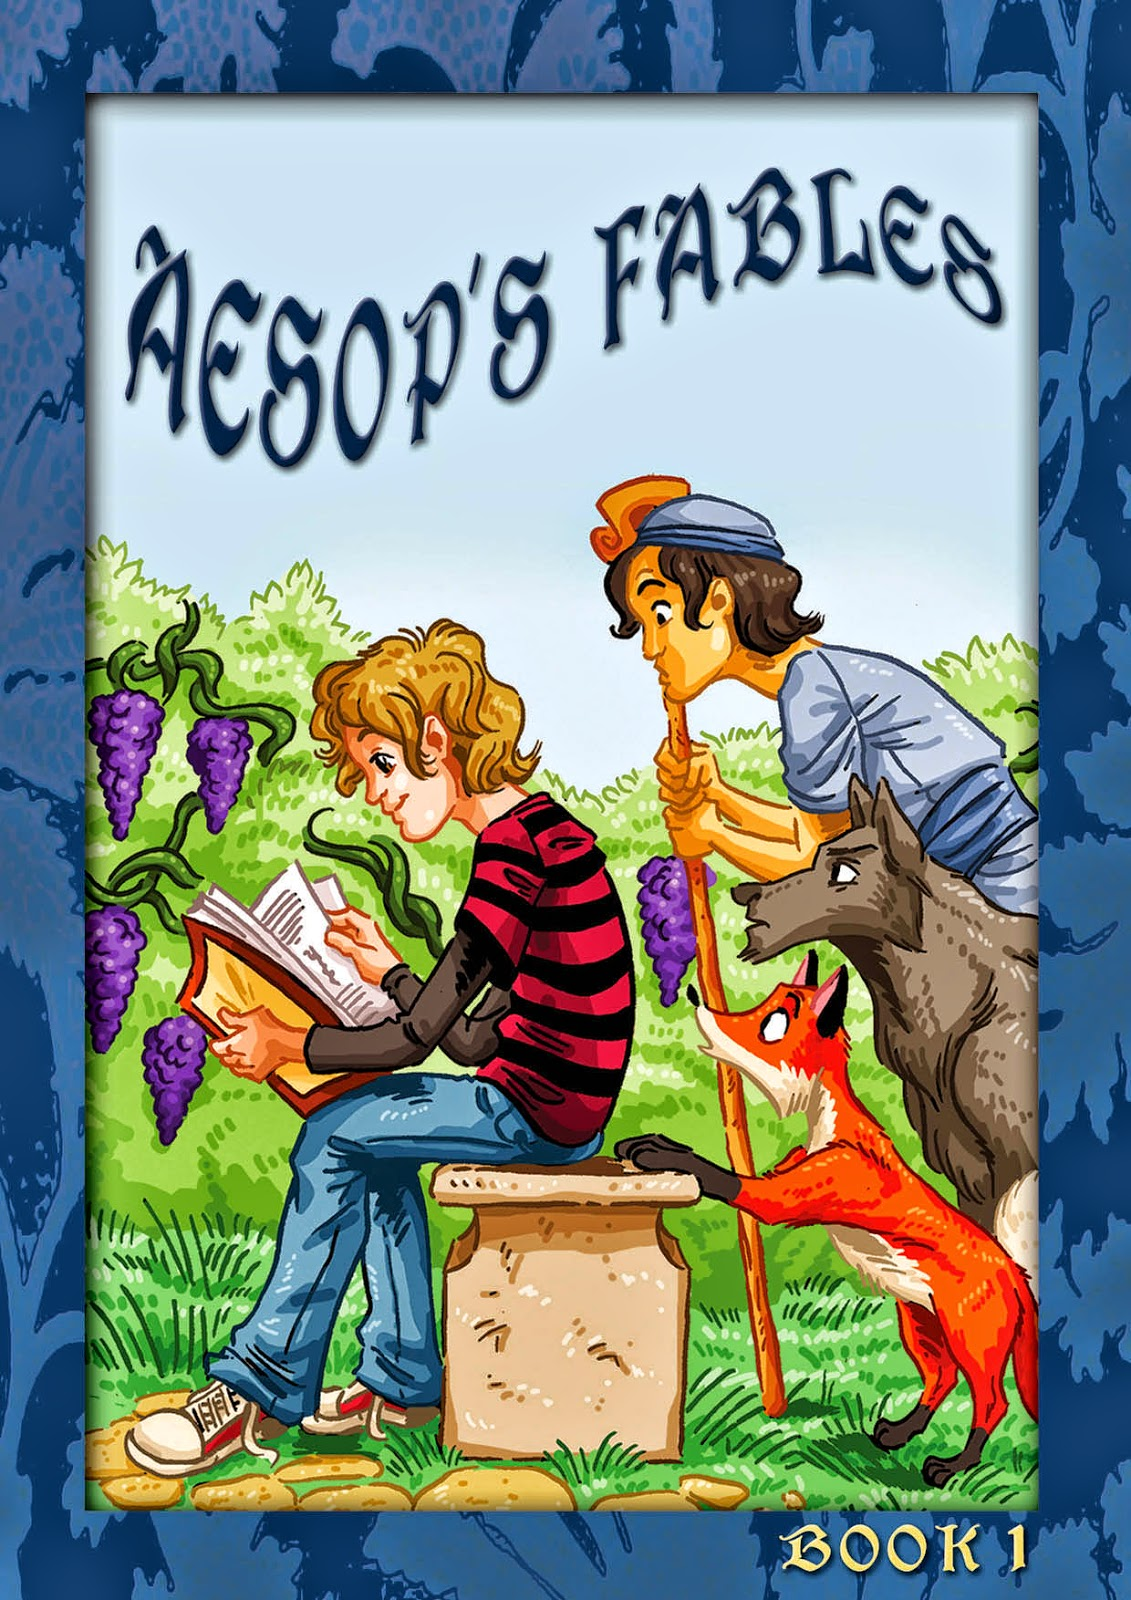 Aesop' Fables, Bulgarian-English, Kindle, Online, Digital, Electronic